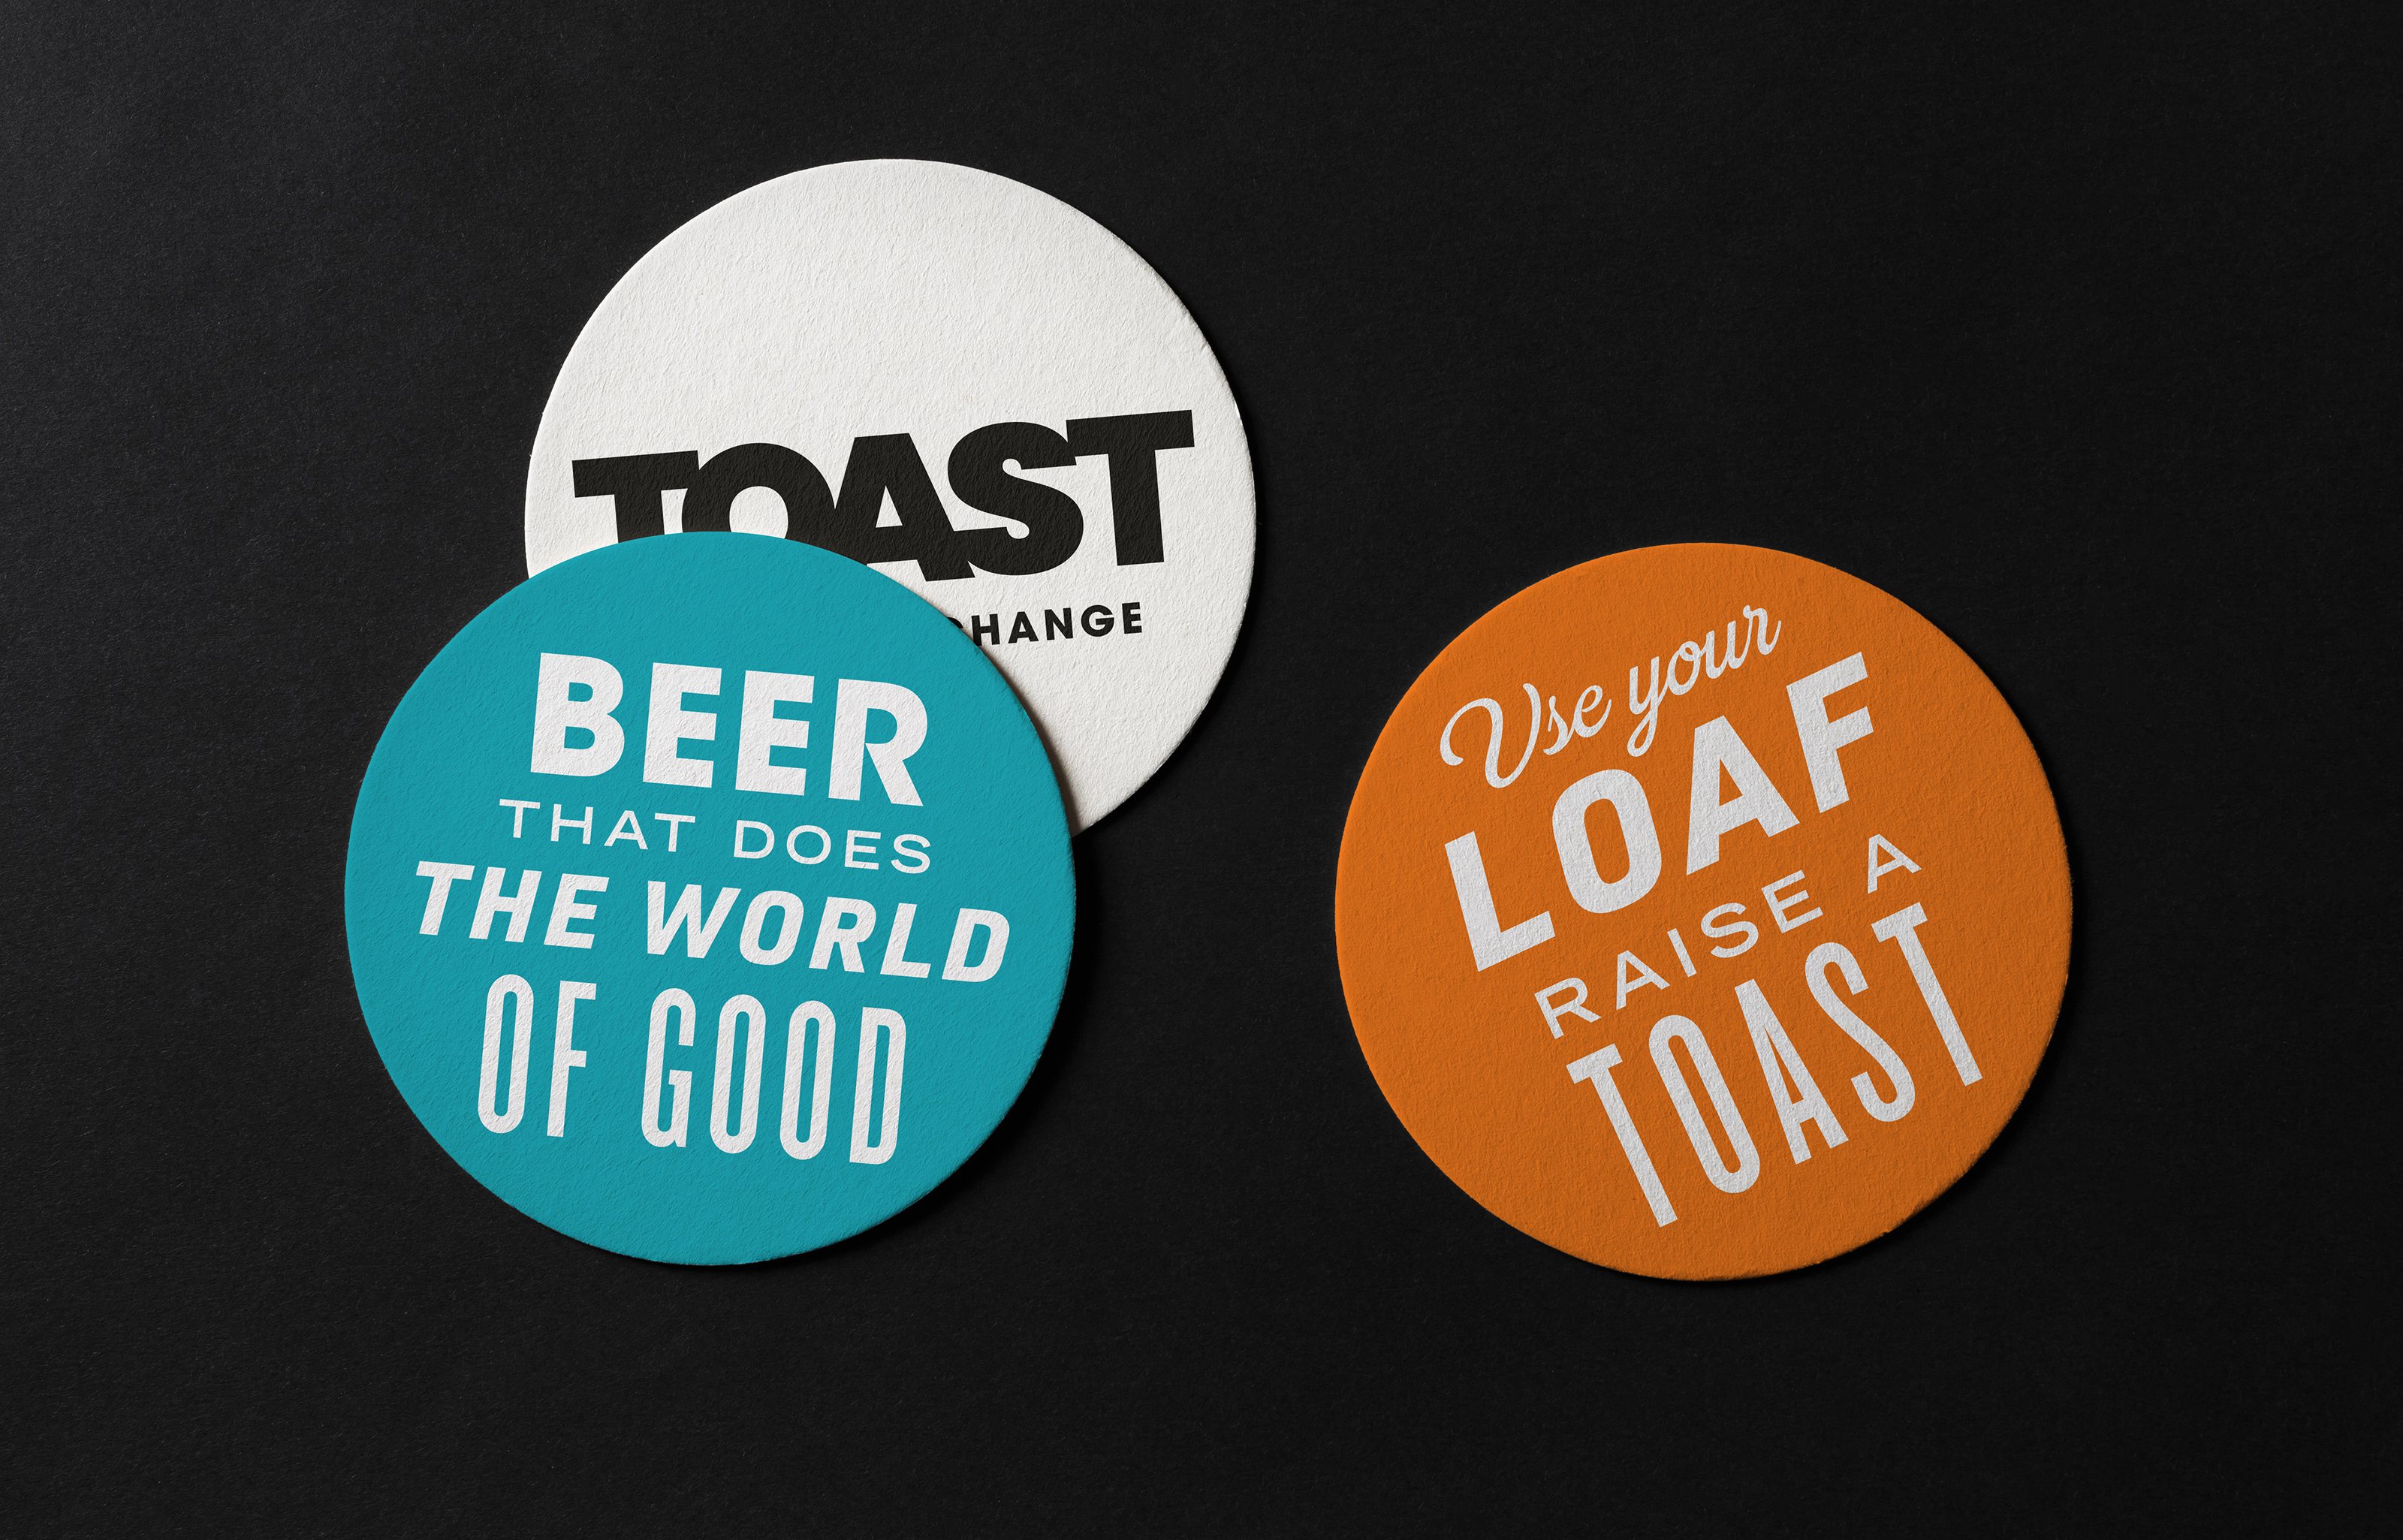 TOAST_Beer_Mats_web